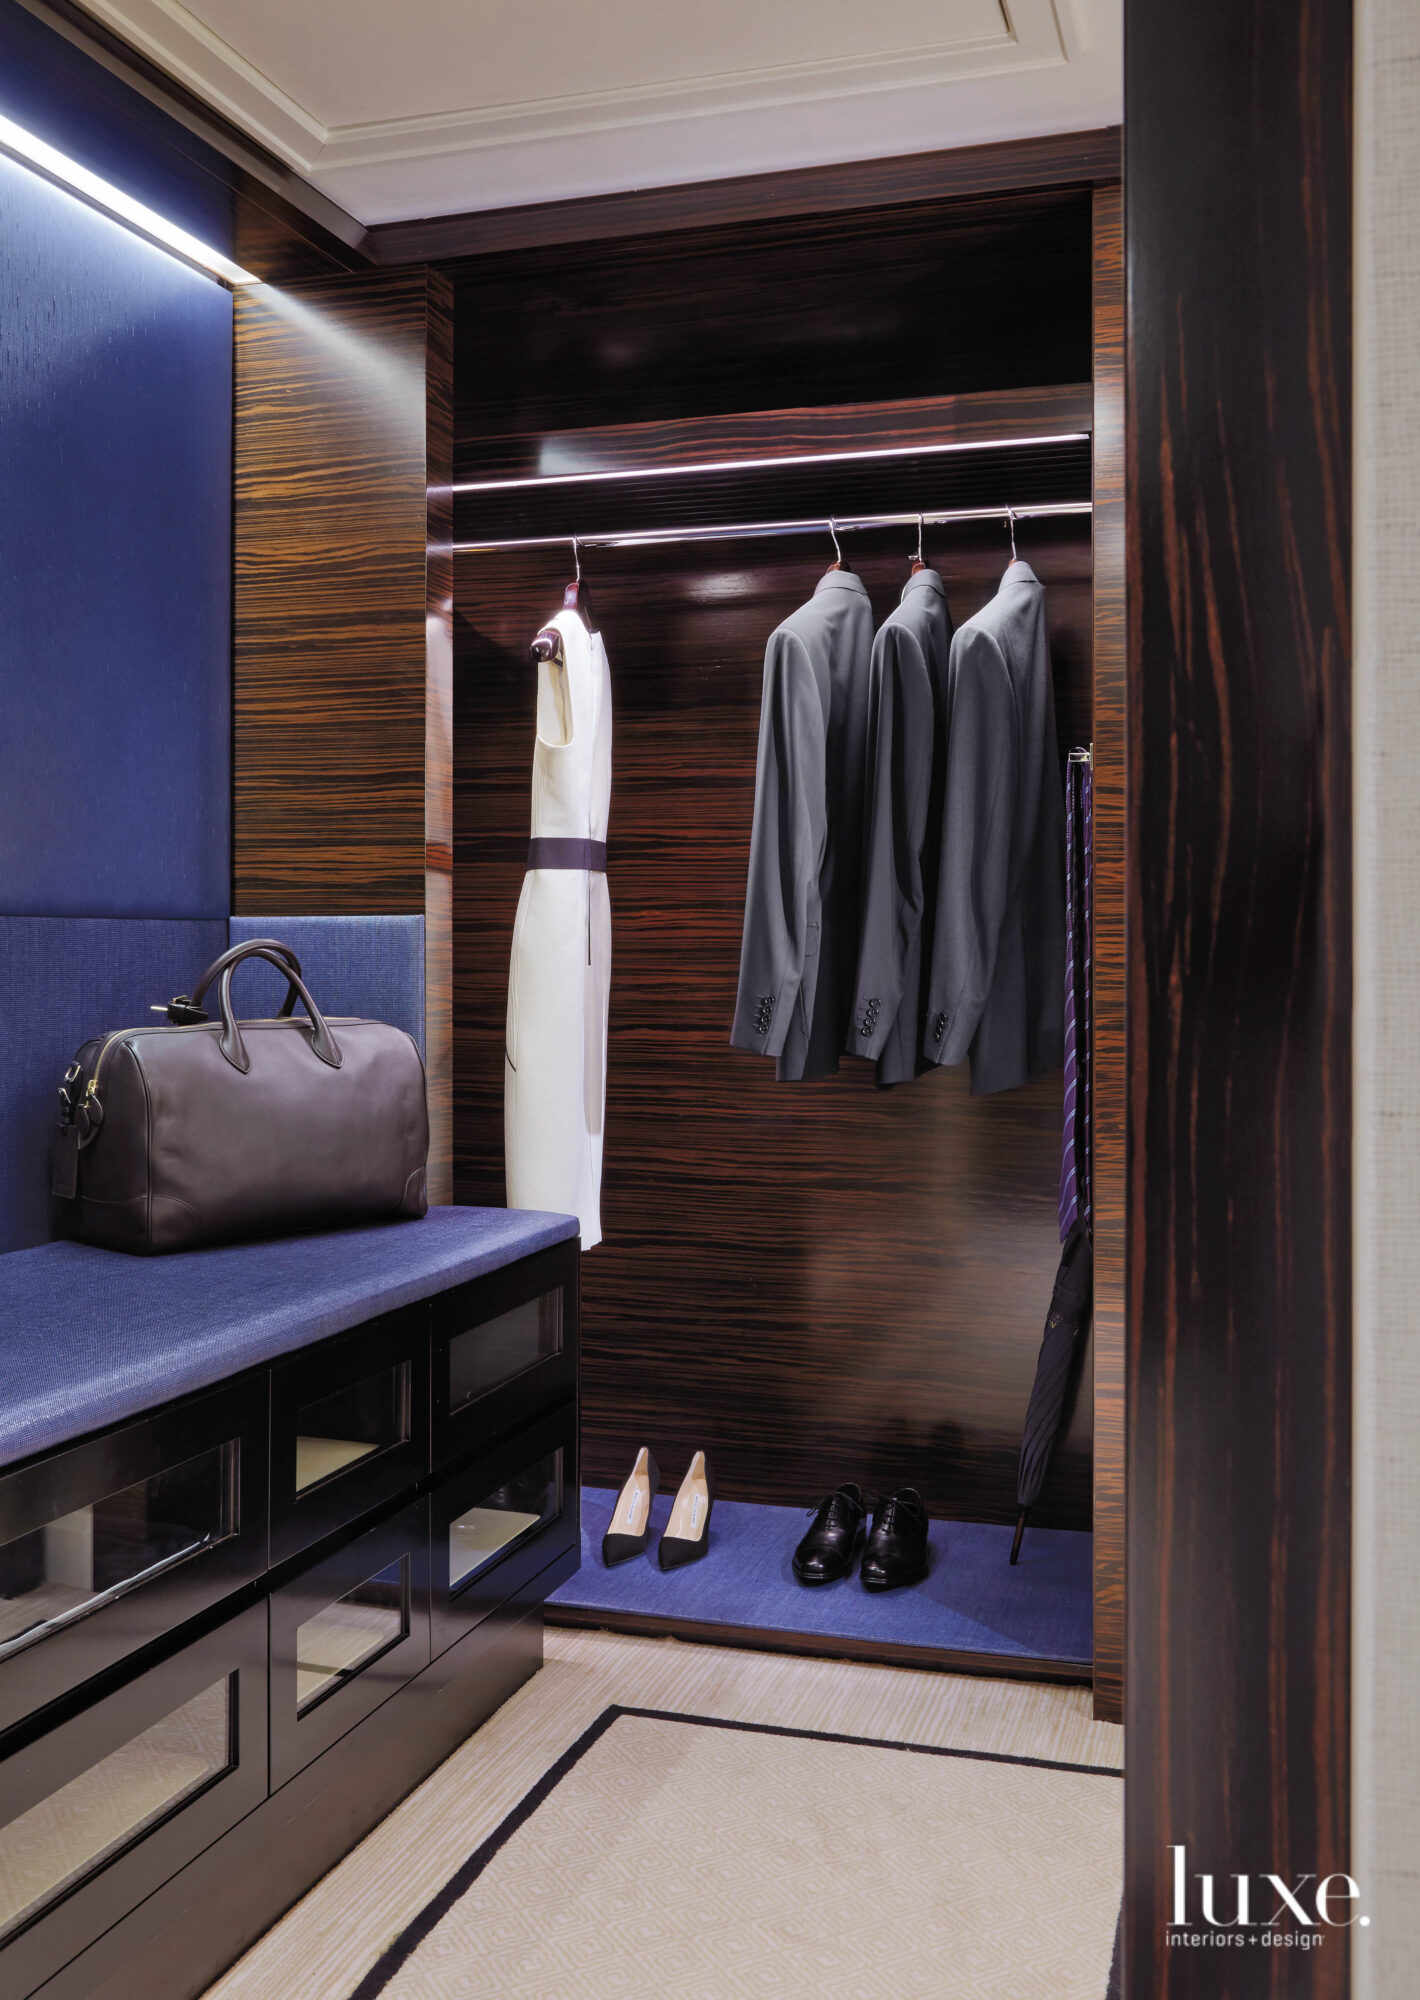 Professional attire rests in a polished wood-finished coat closet.